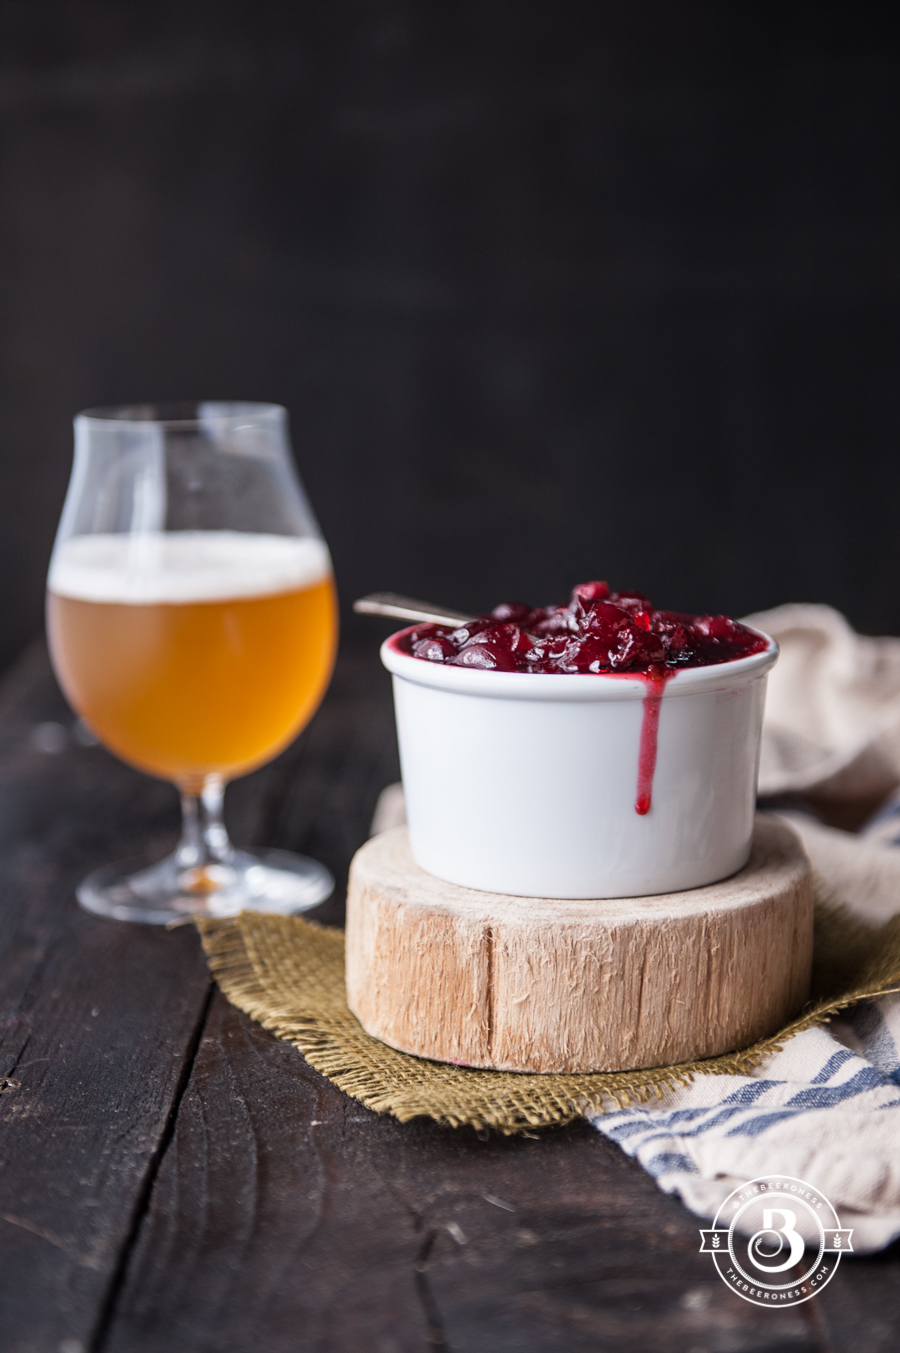 Chipotle White Ale Cranberry Sauce